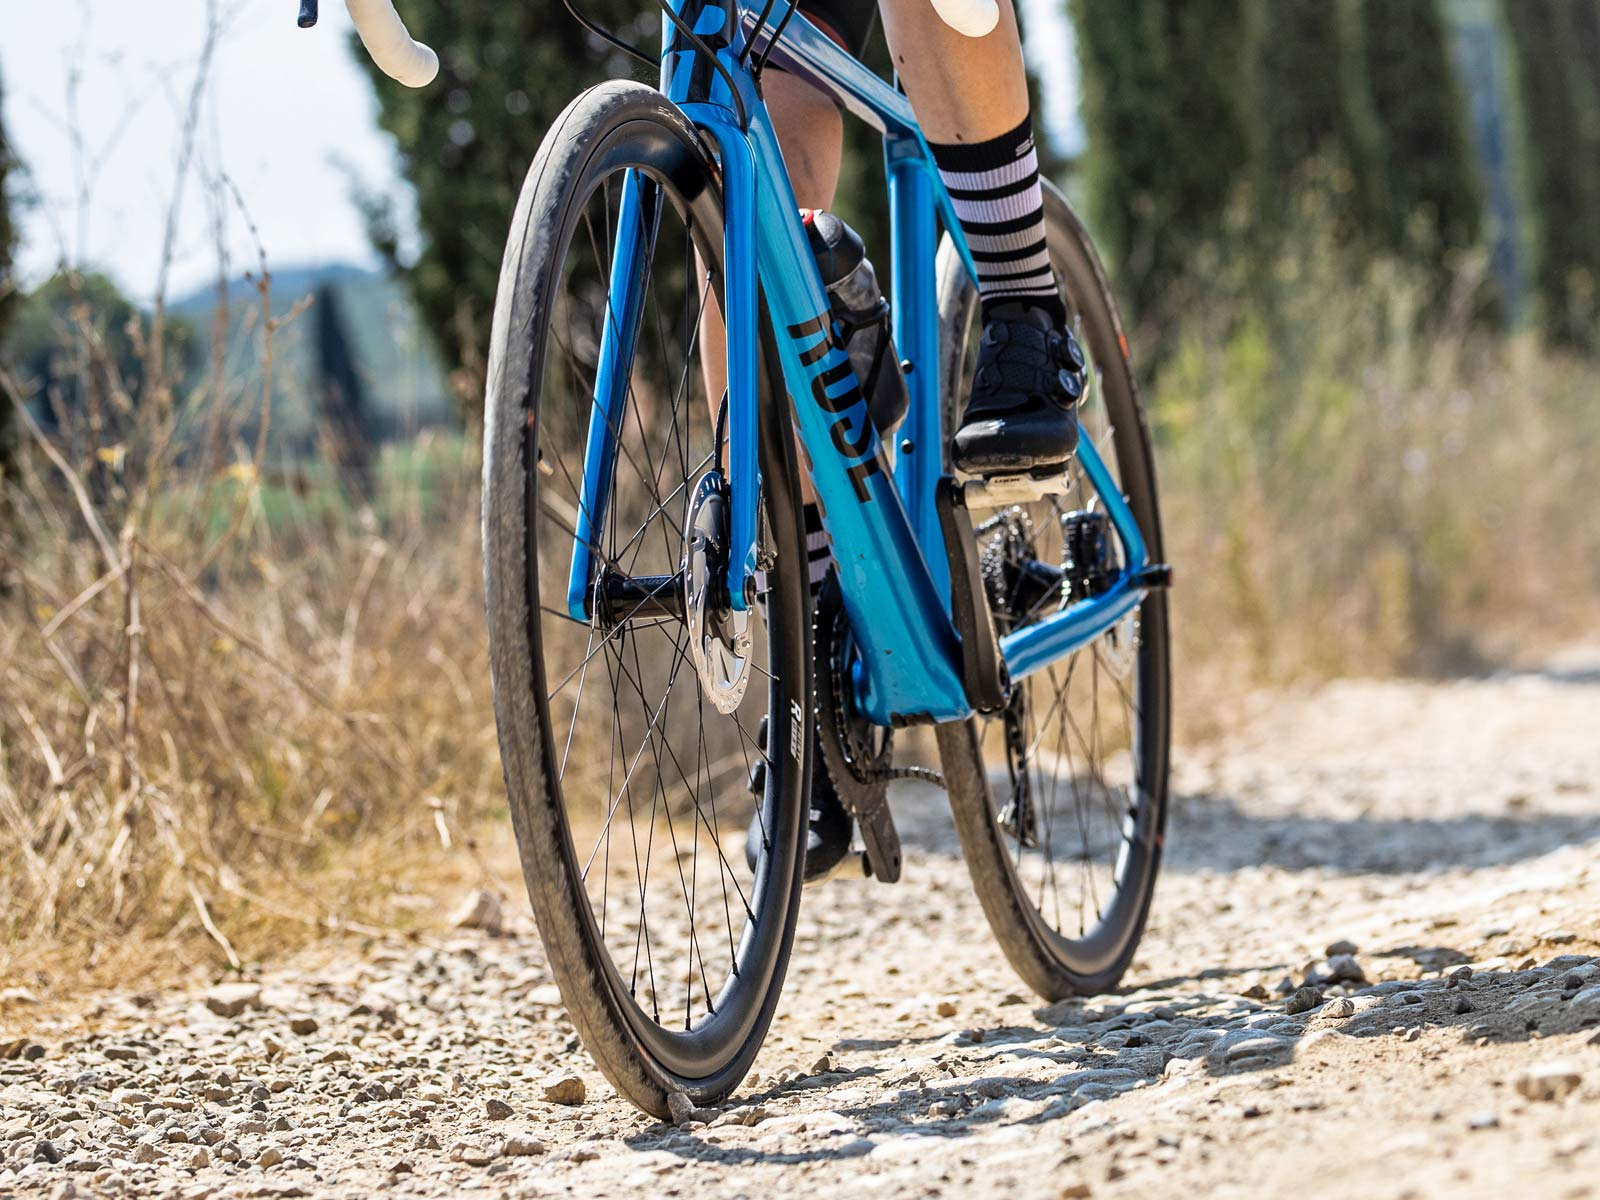 2020 all new Schwalbe Pro One TLE tubeless road bike tire, faster supple souplesse, photo by Irmo Keizer